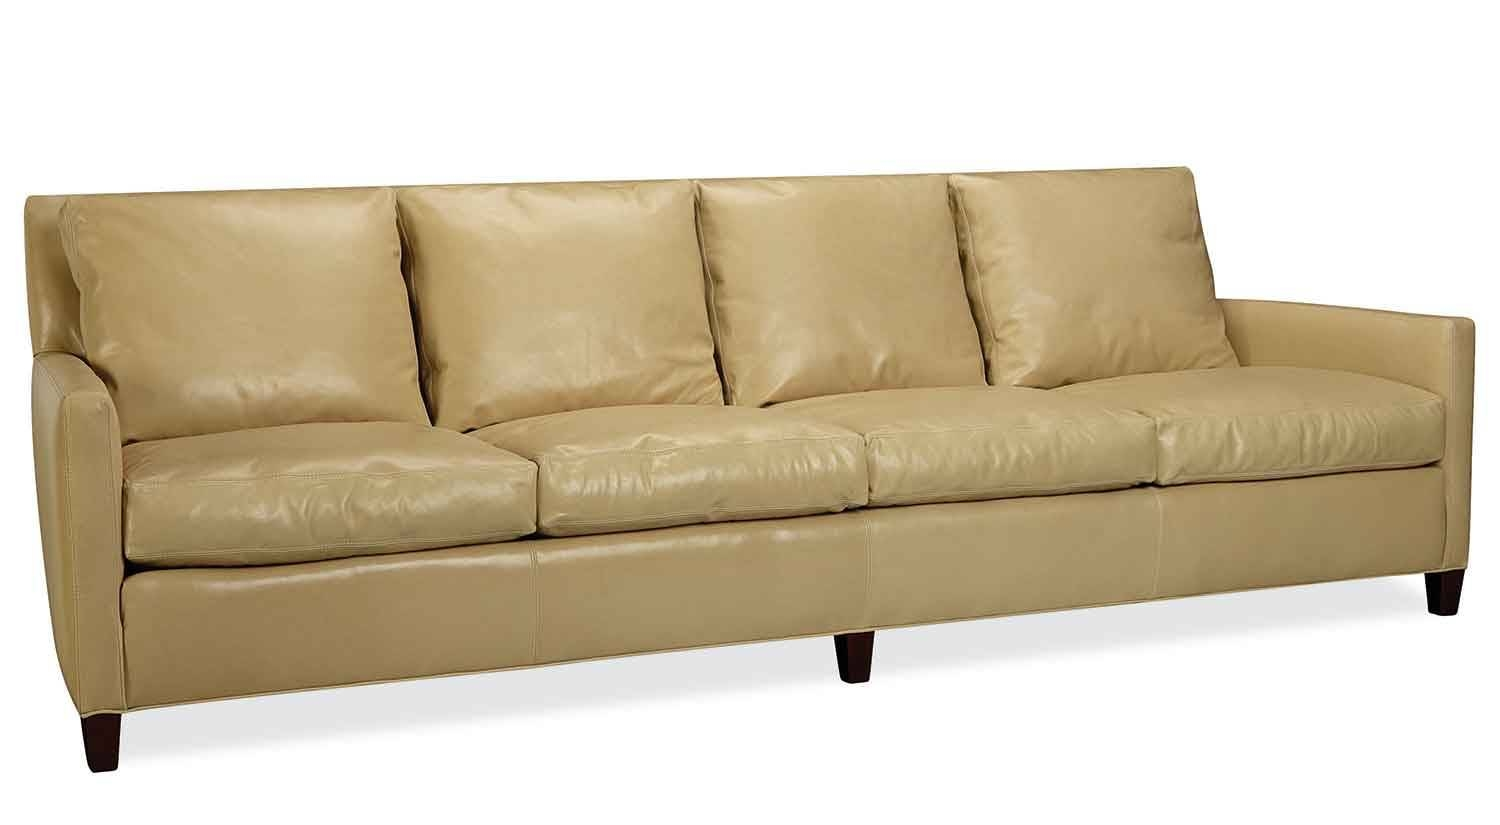 4 Seat Couch | Woodworking Plans within 4 Seat Couch (Image 1 of 30)